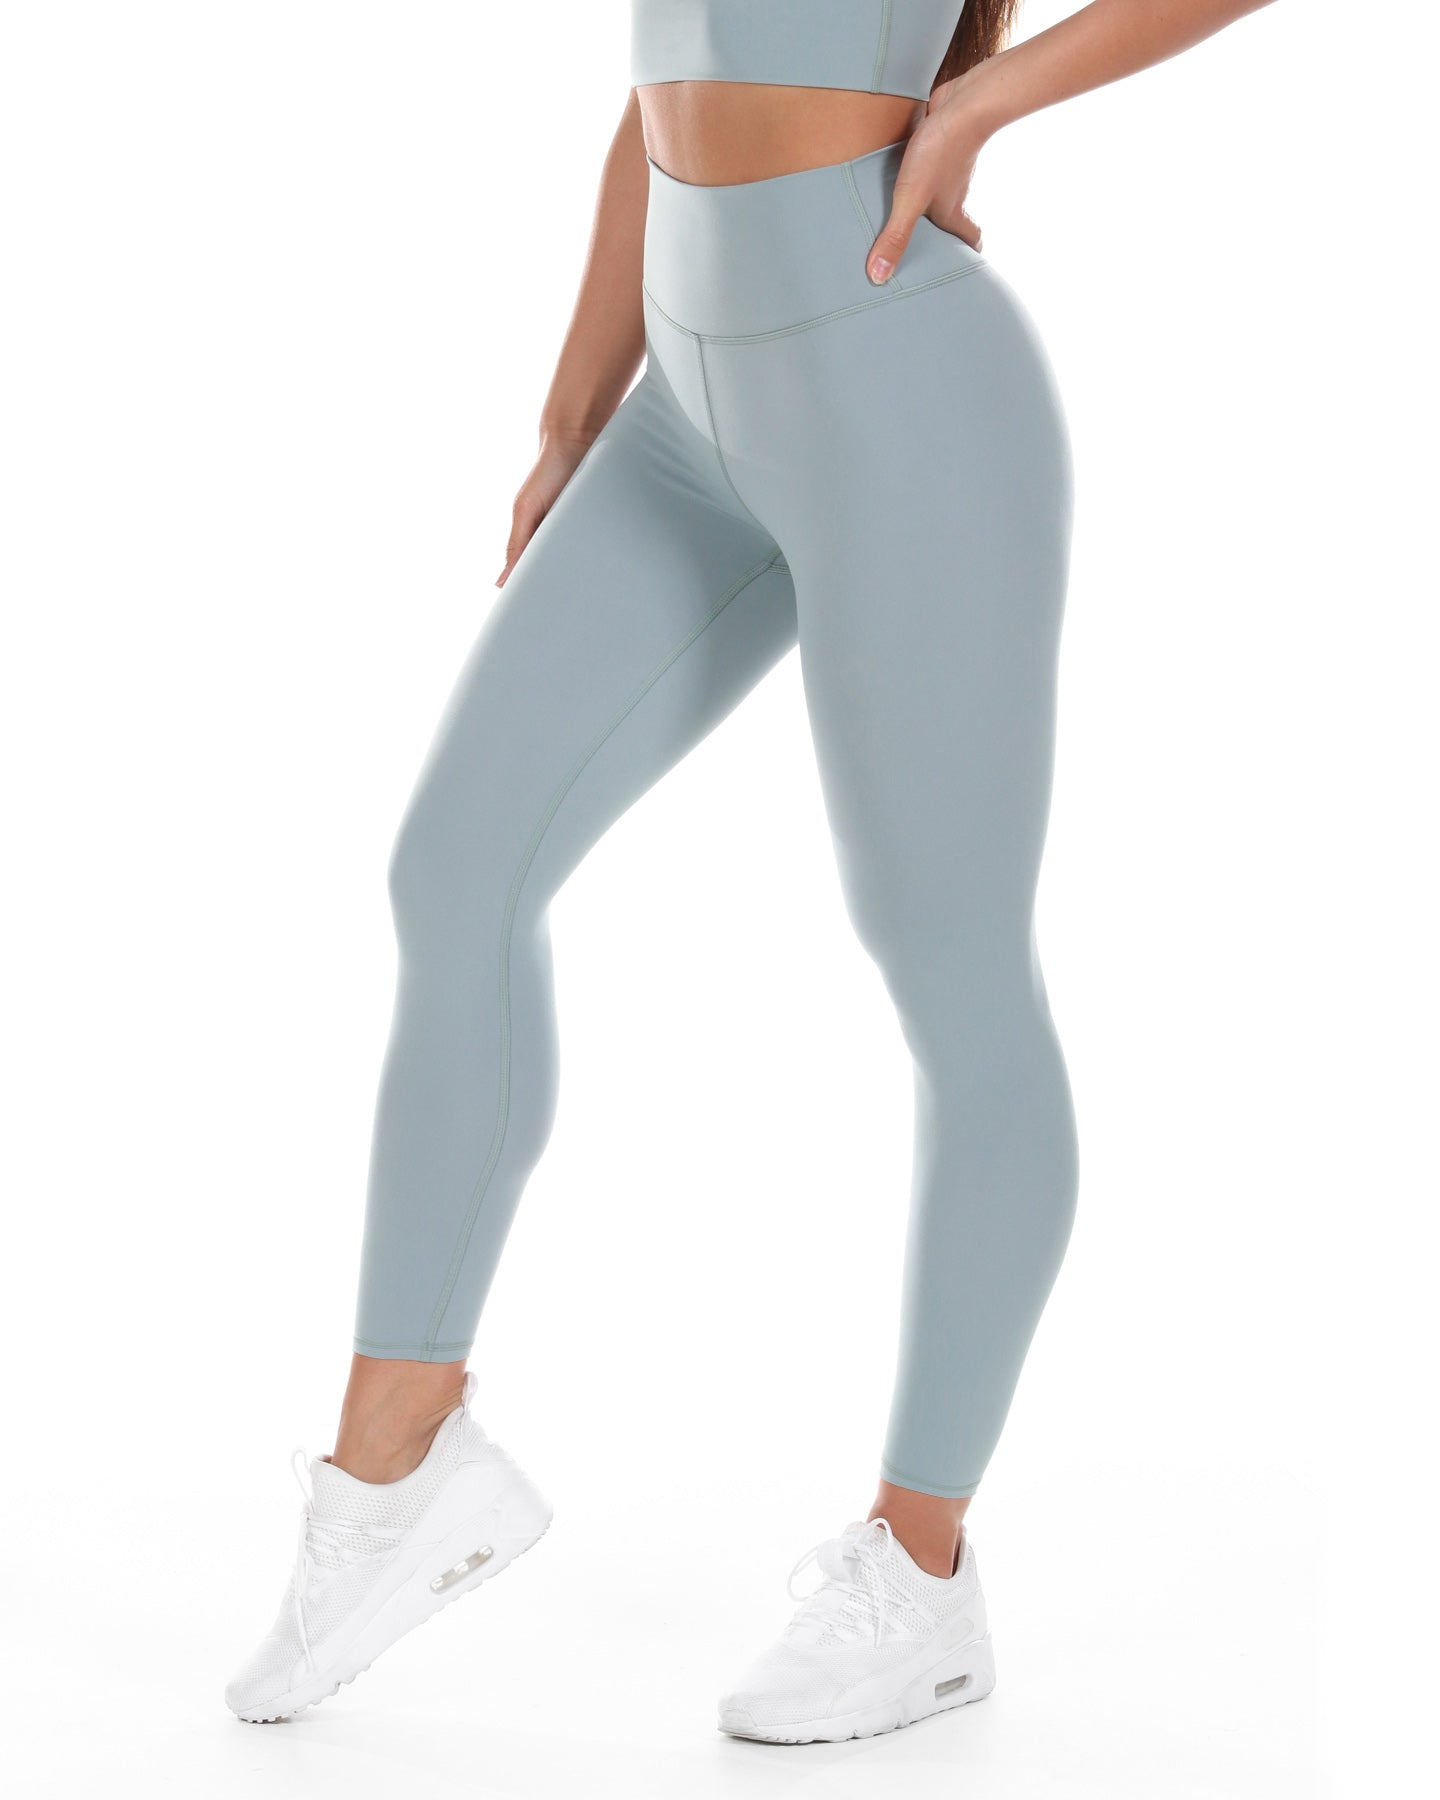 Aura Leggings - Pale Sage